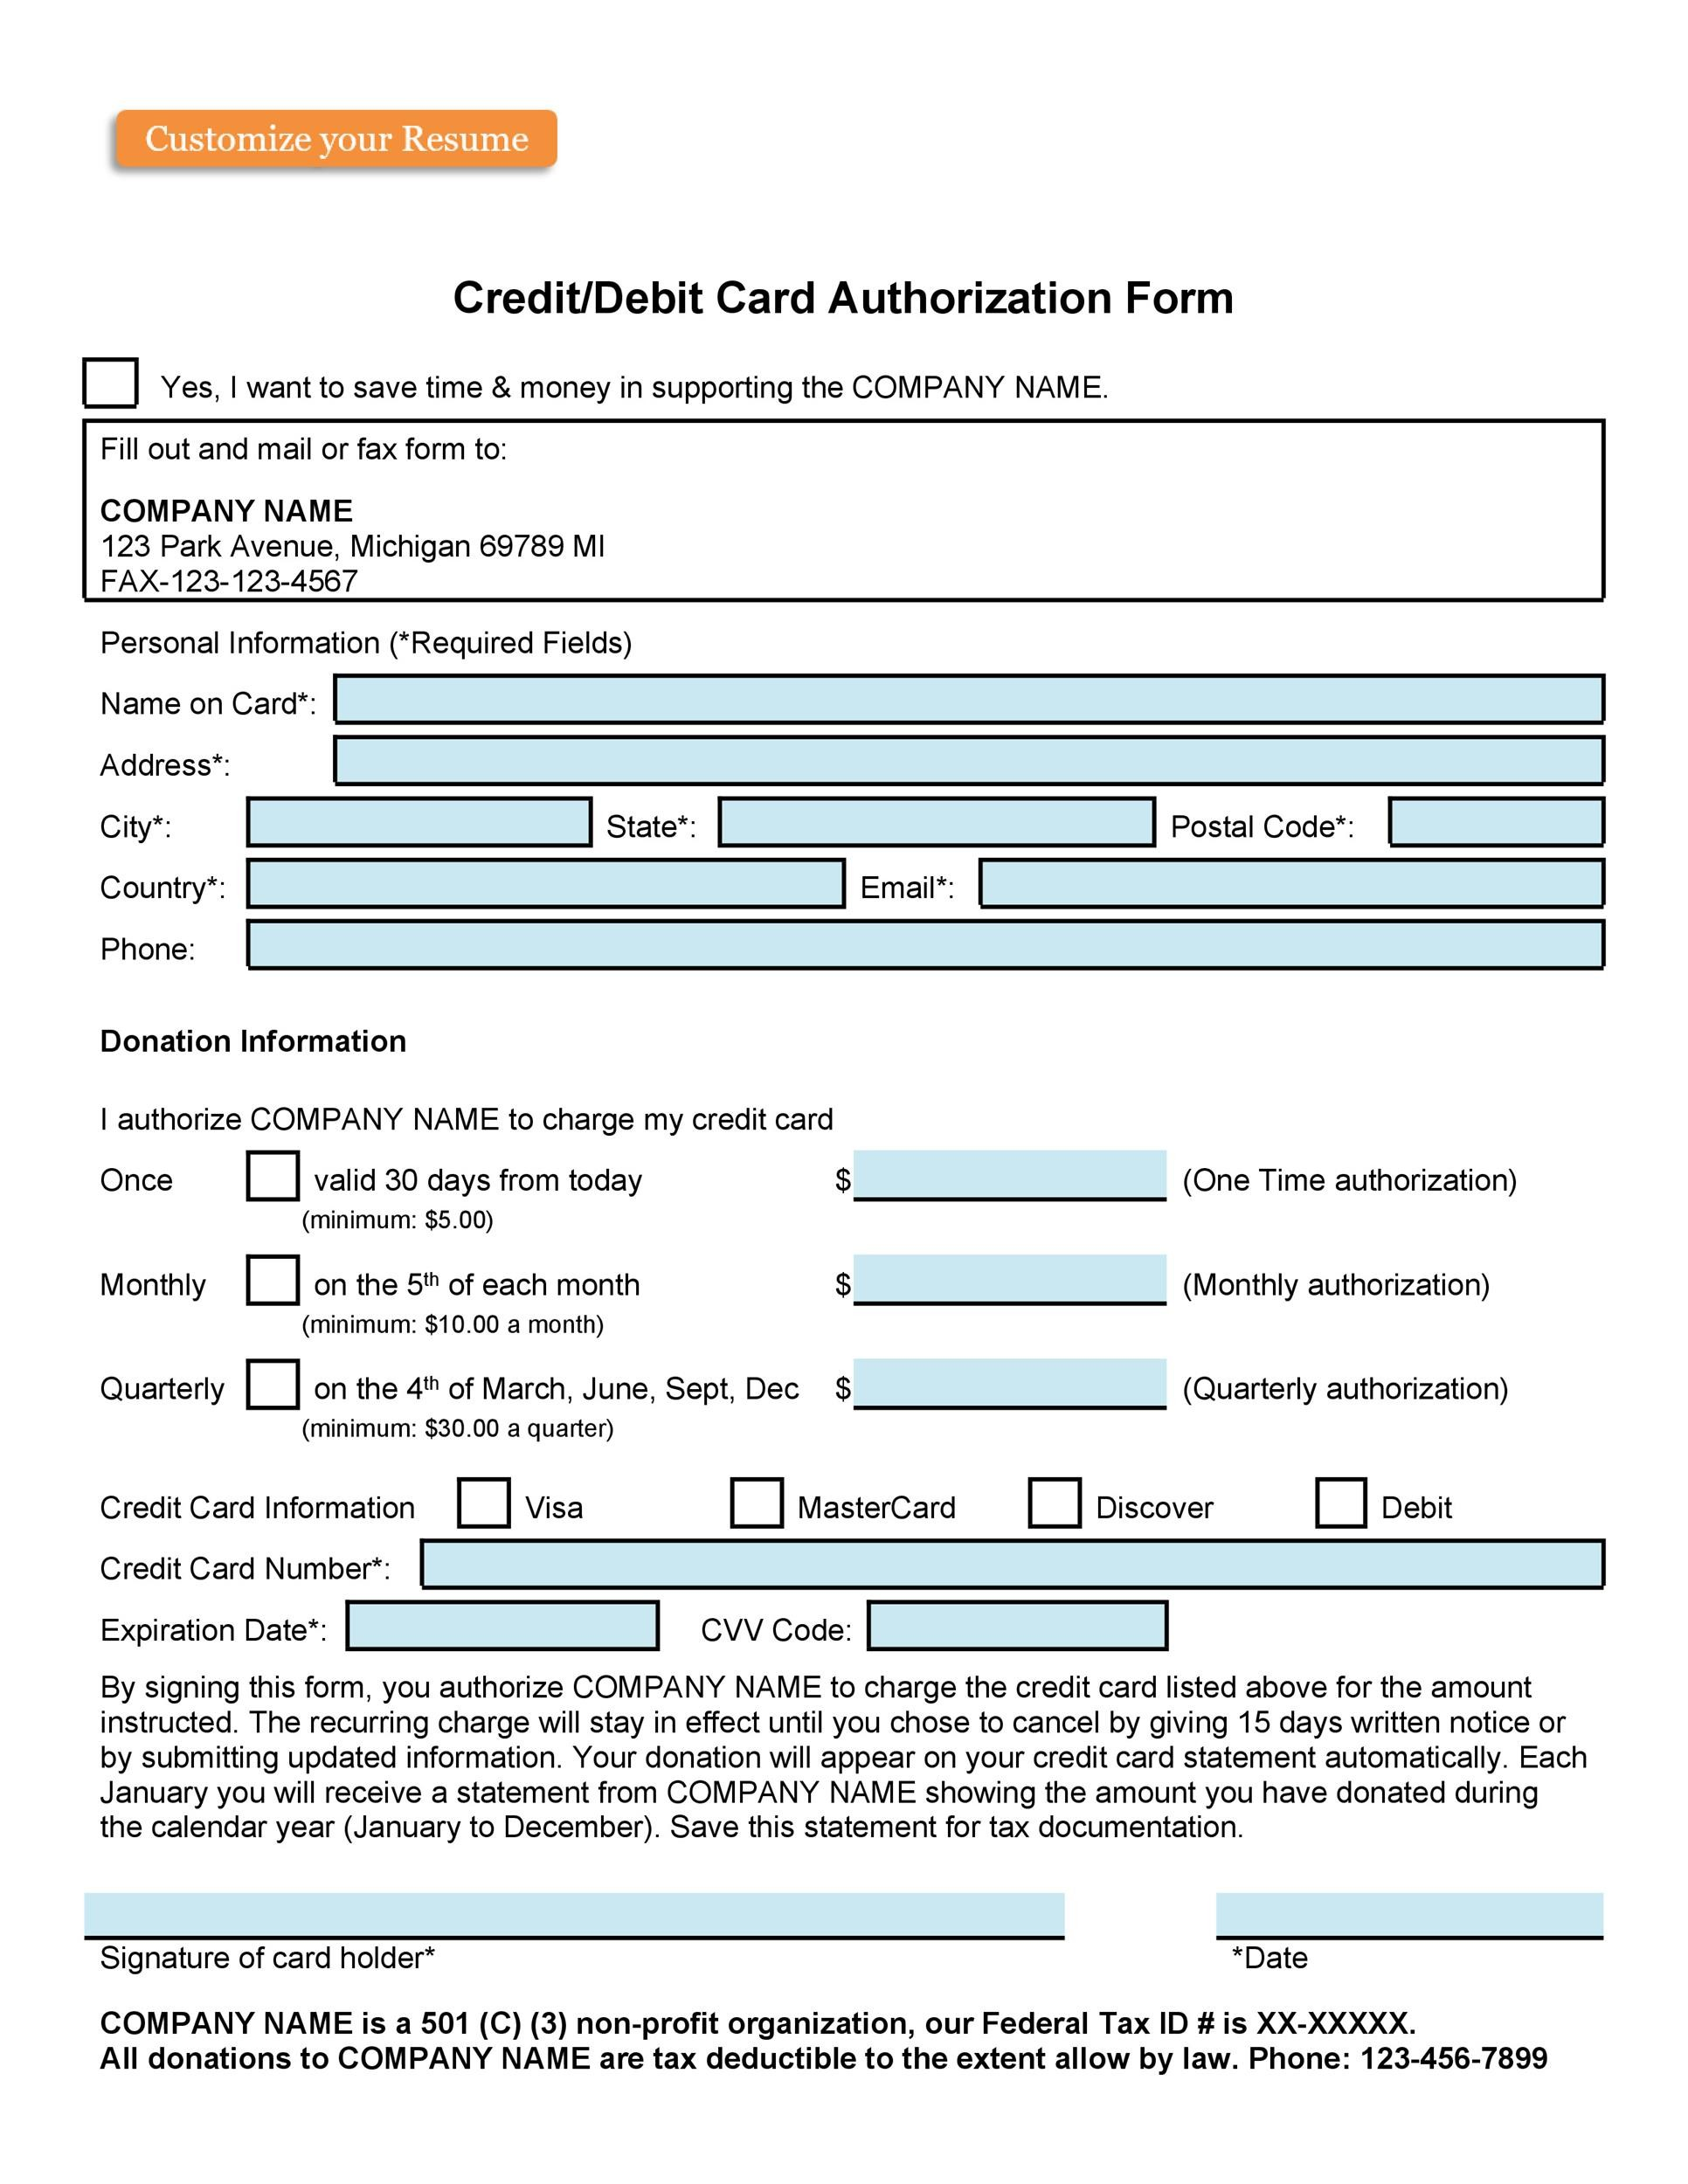 Free credit card authorization form template 30